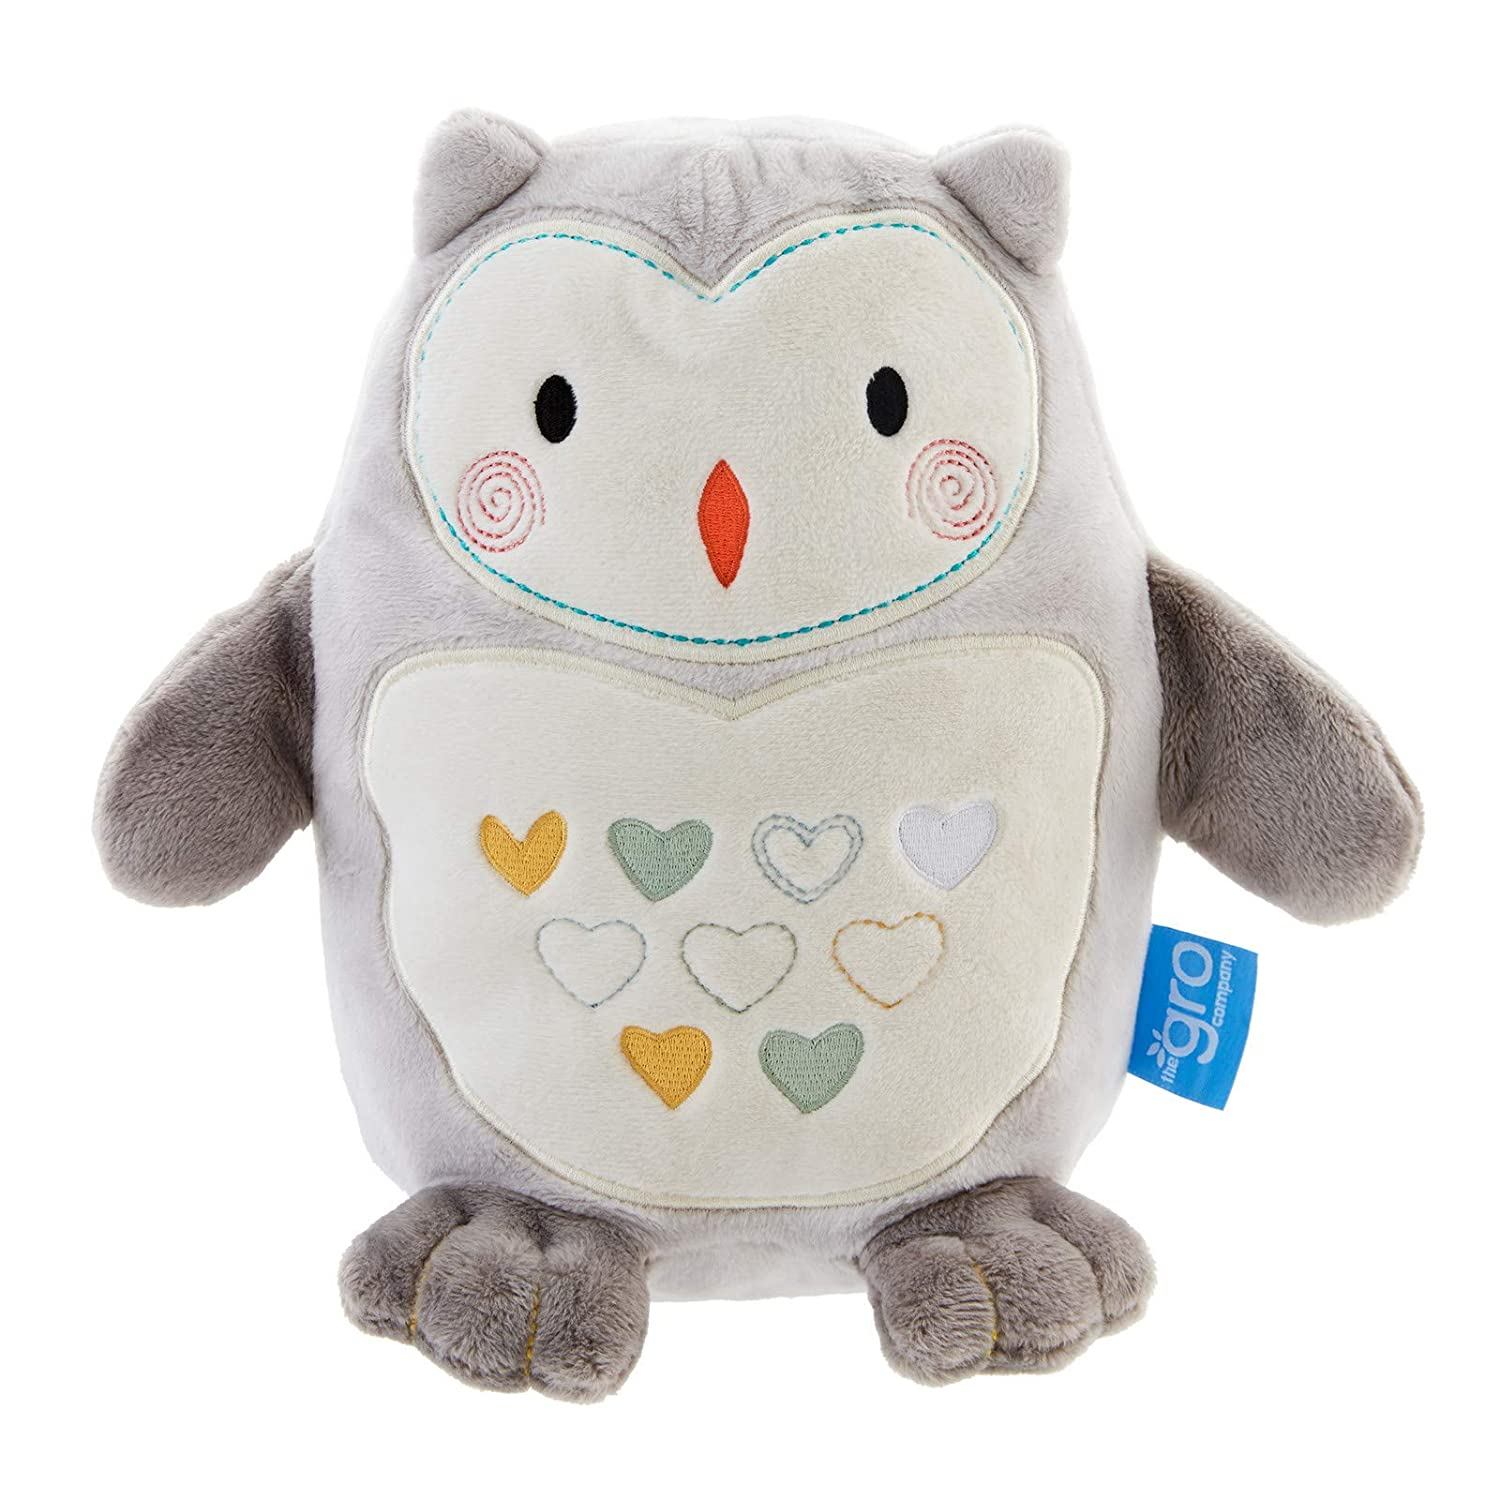 The GRO Company Percy the Penguin Sleep Aid and Comforter